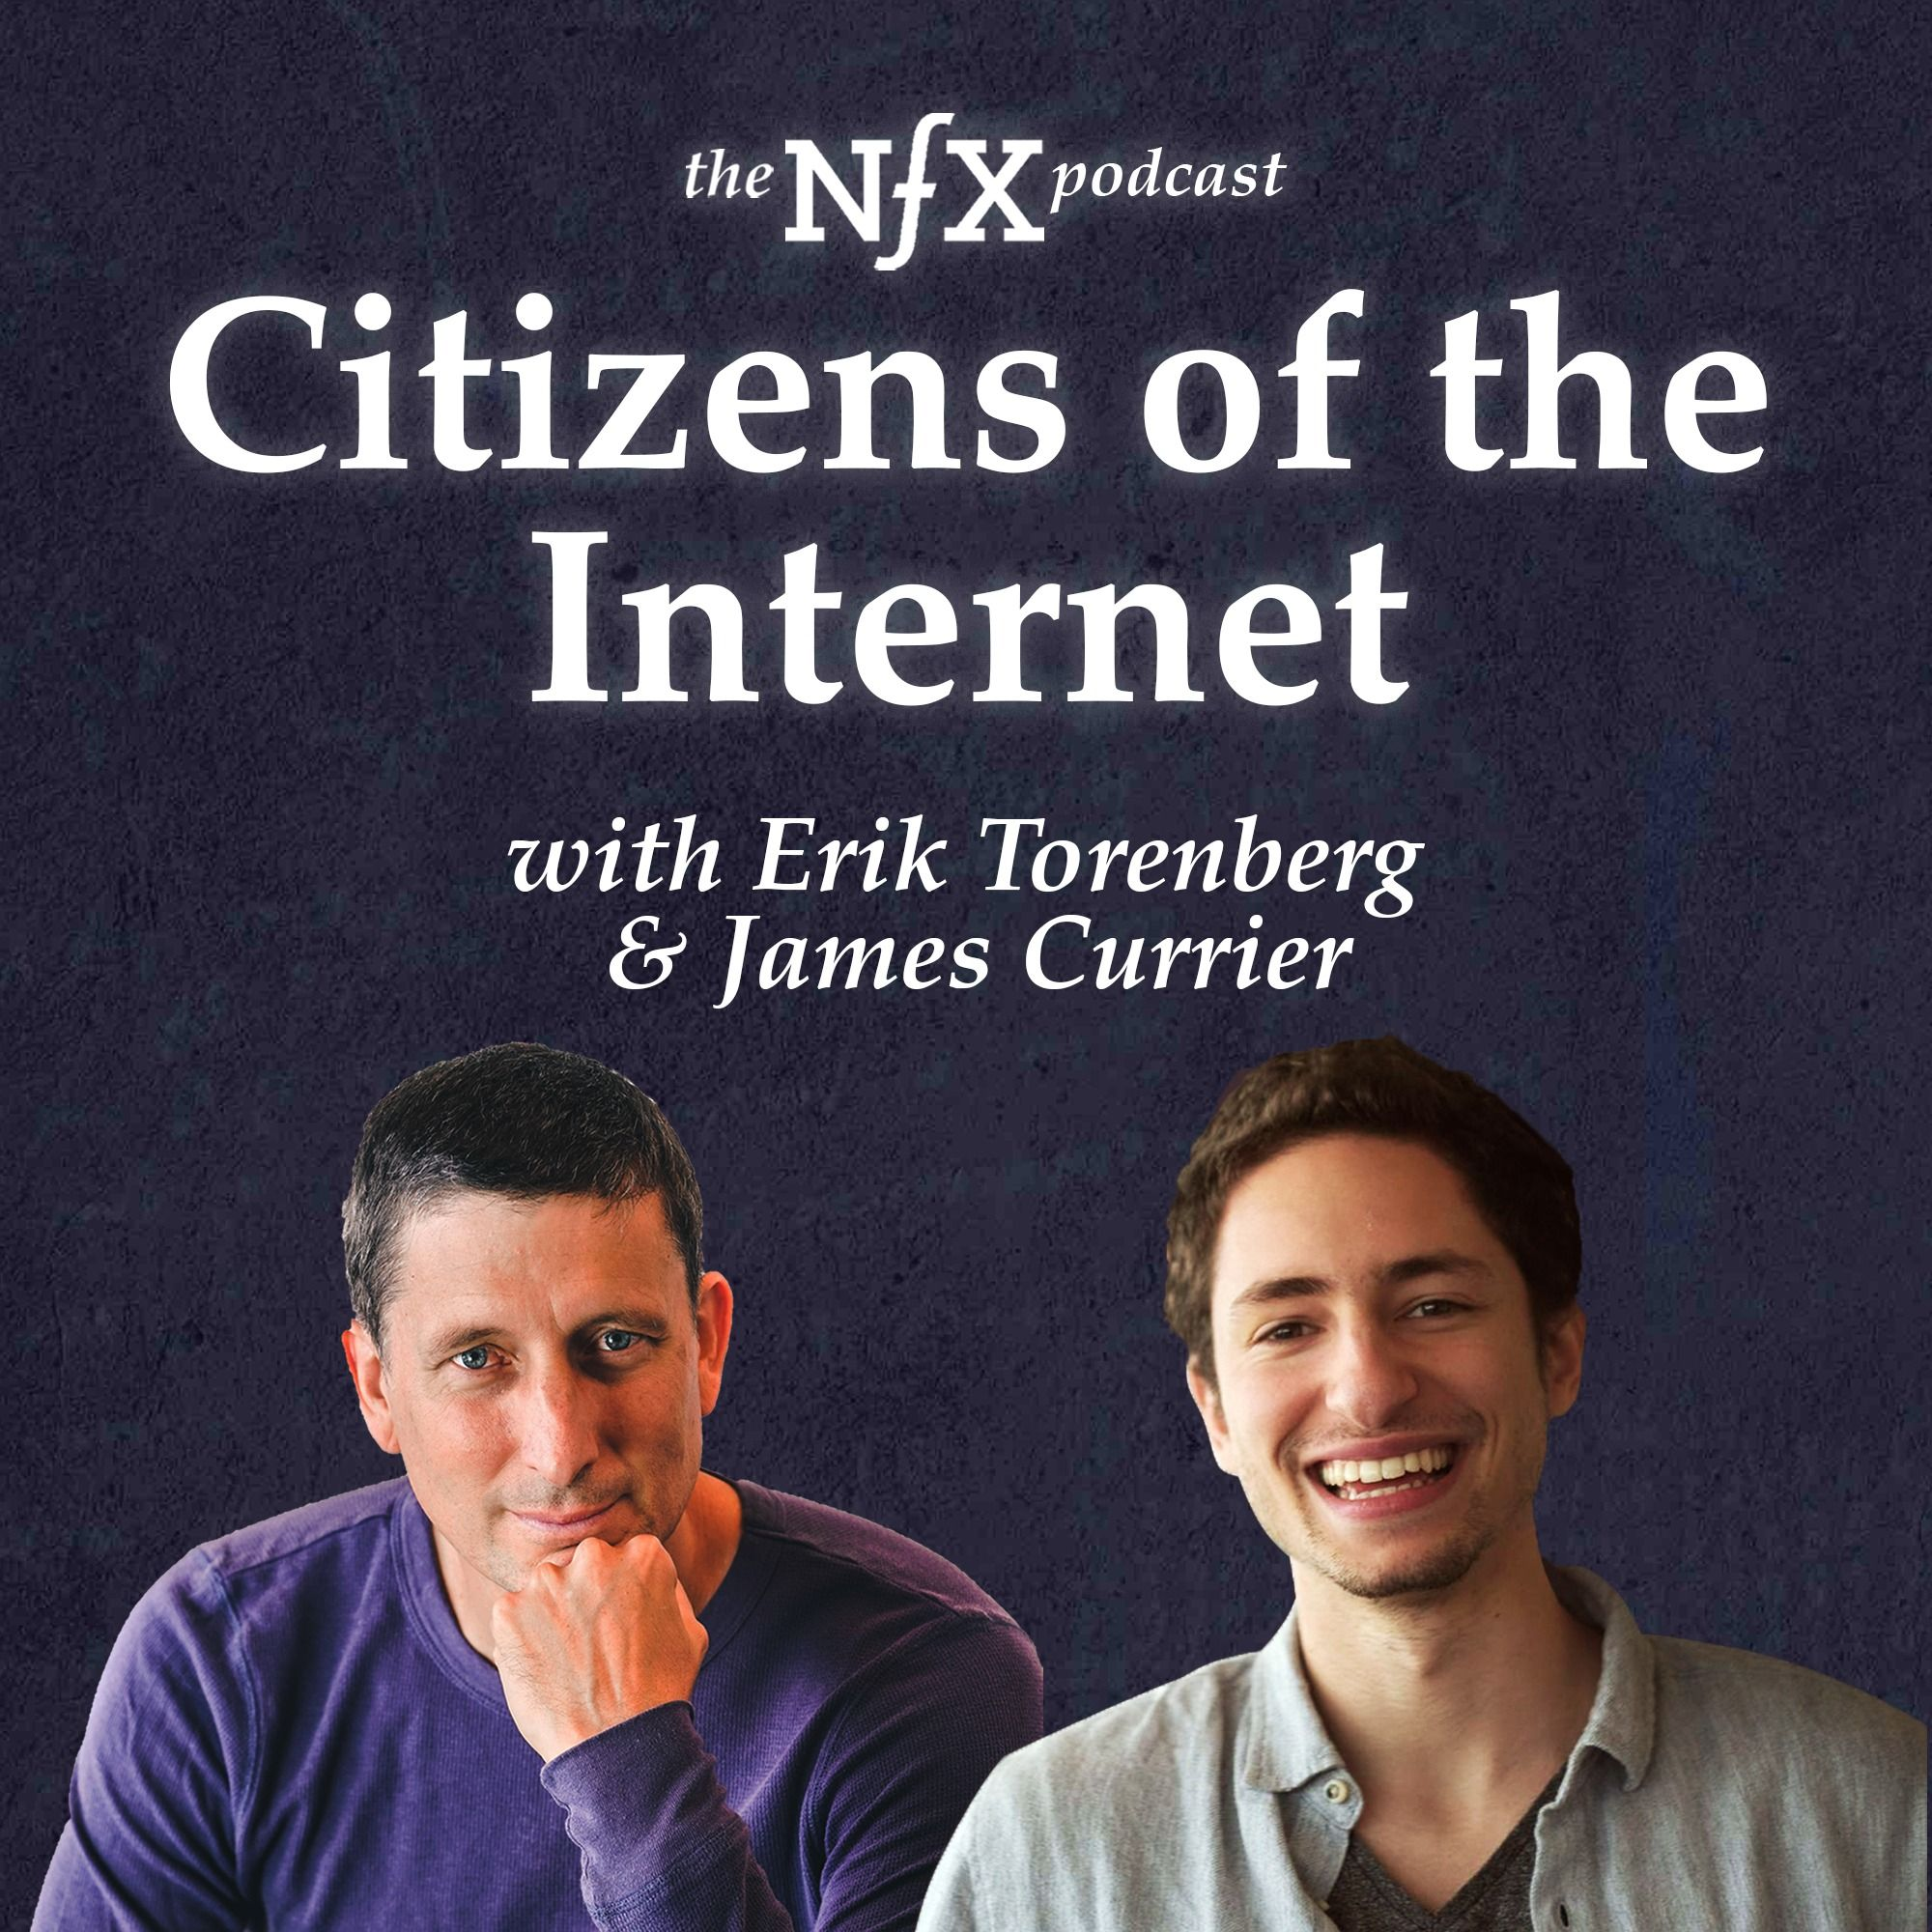 Erik Torenberg & James Currier on being Citizens of the Internet